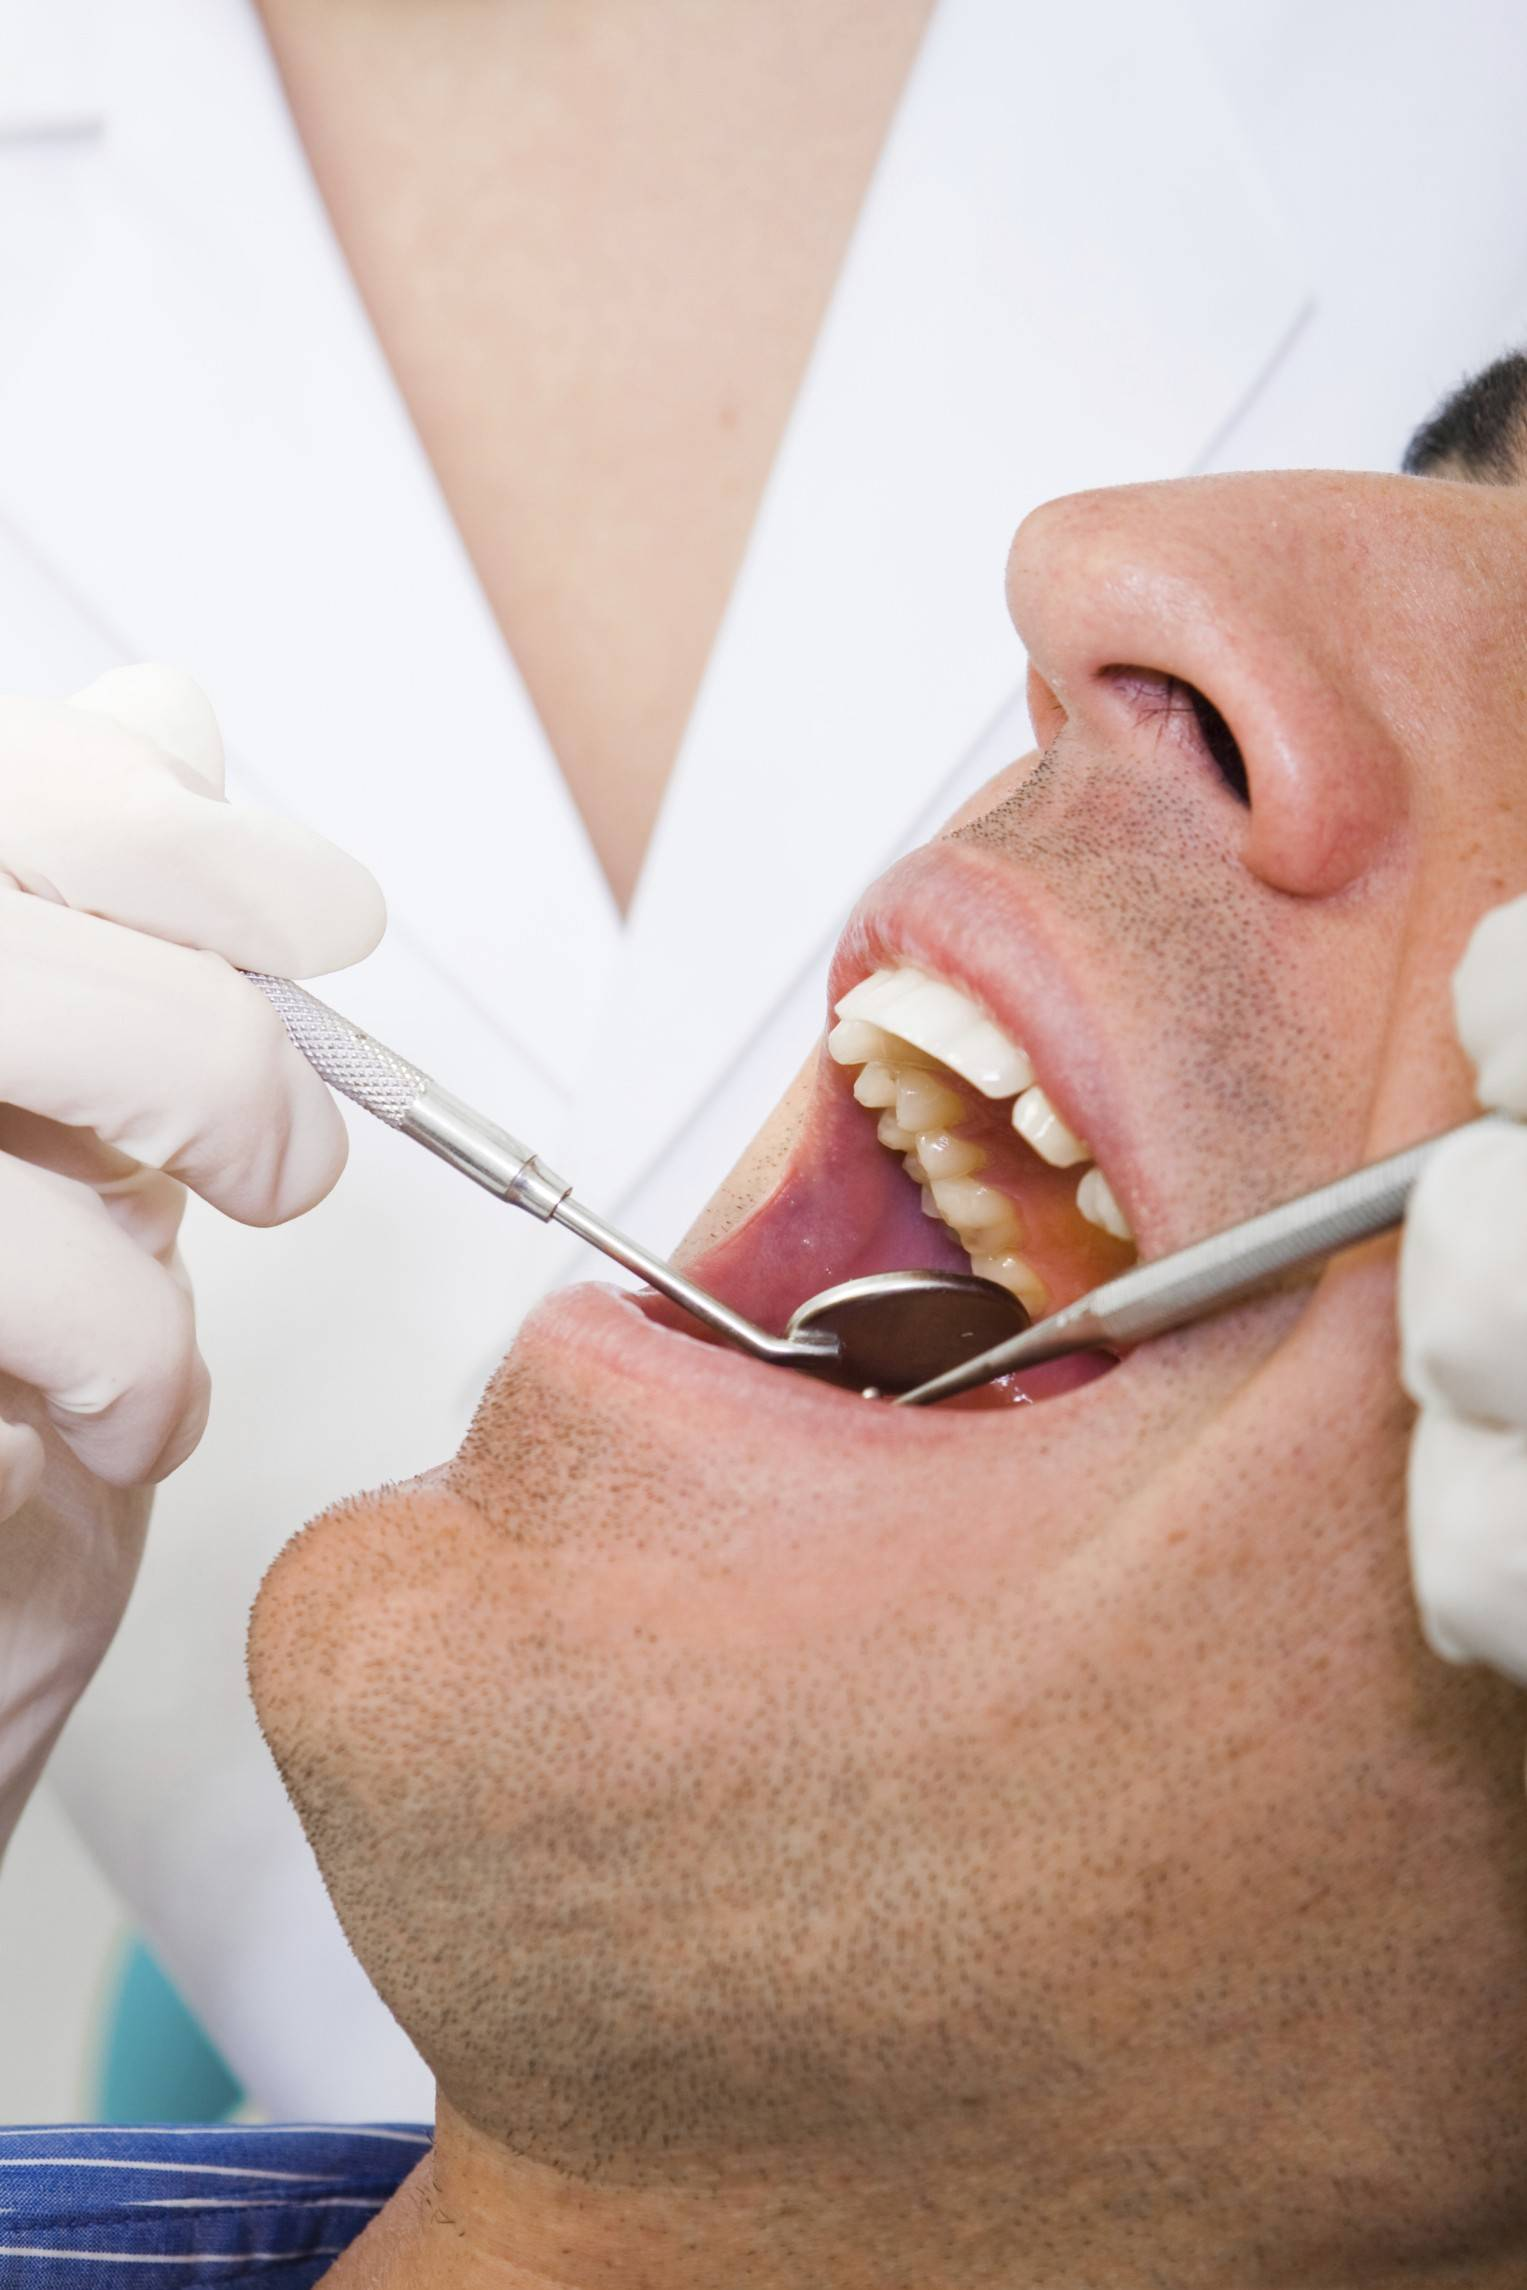 Could a new type of synthetic biomaterial allow teeth to repair themselves?